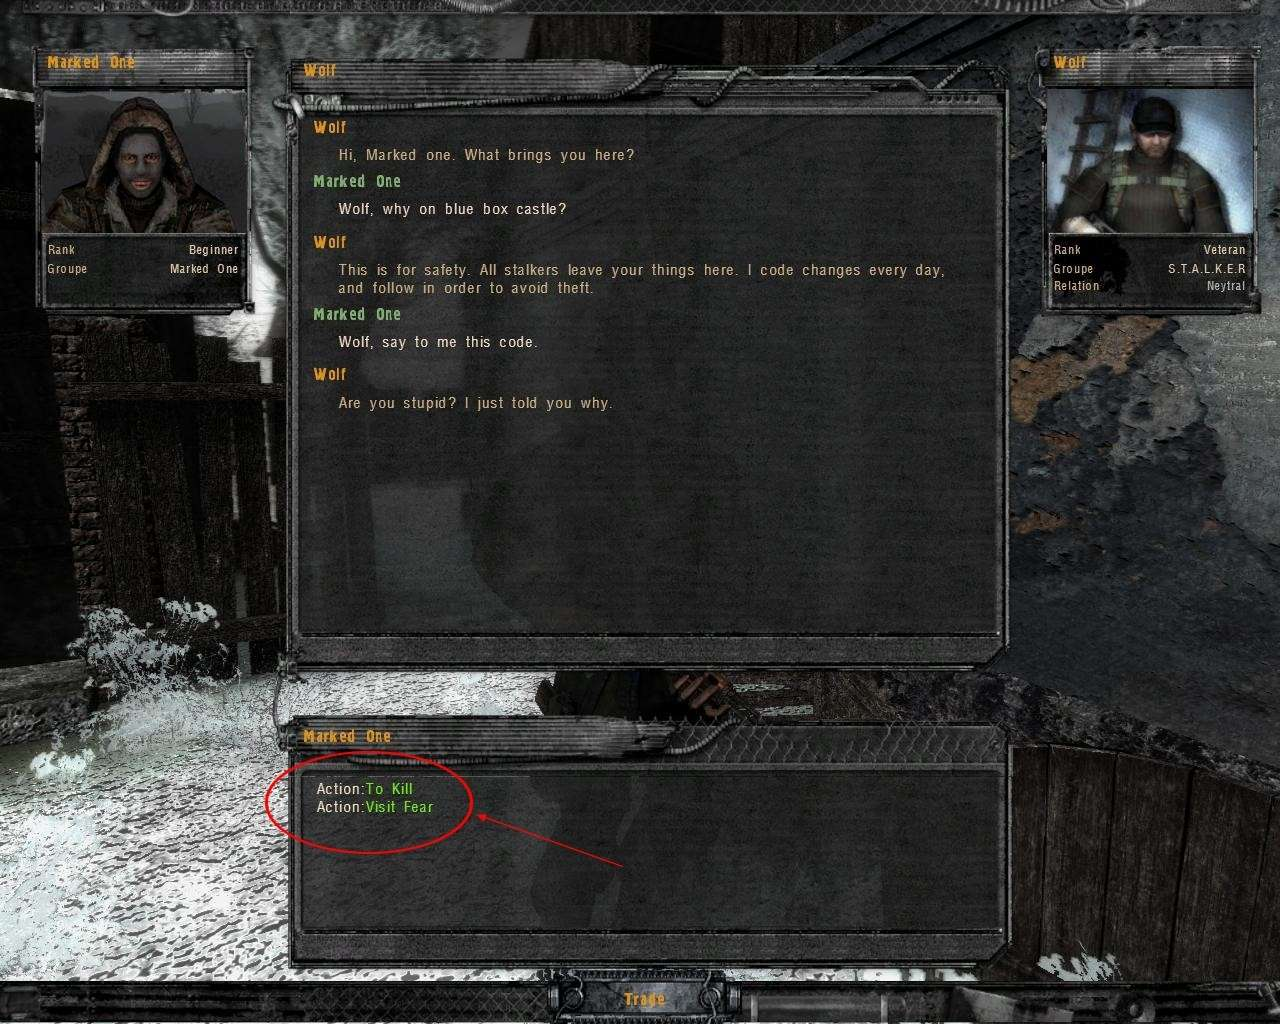 Nature Winter 2.3 BE Deluxe - Find A Secret Blue Box Sidorovich!! Ss_bou51